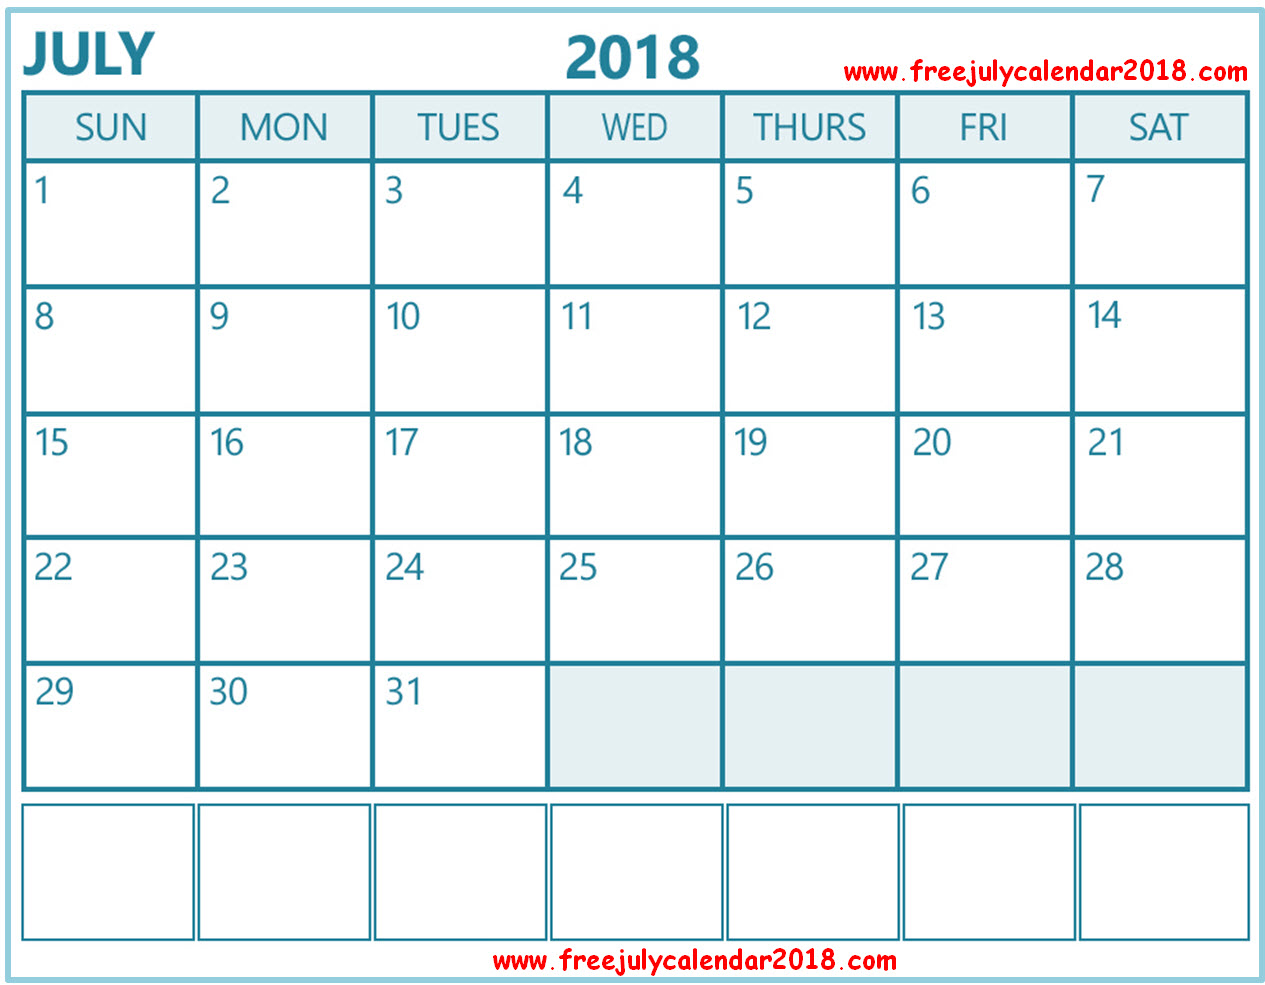 Monthly Daily July Calendar 2018